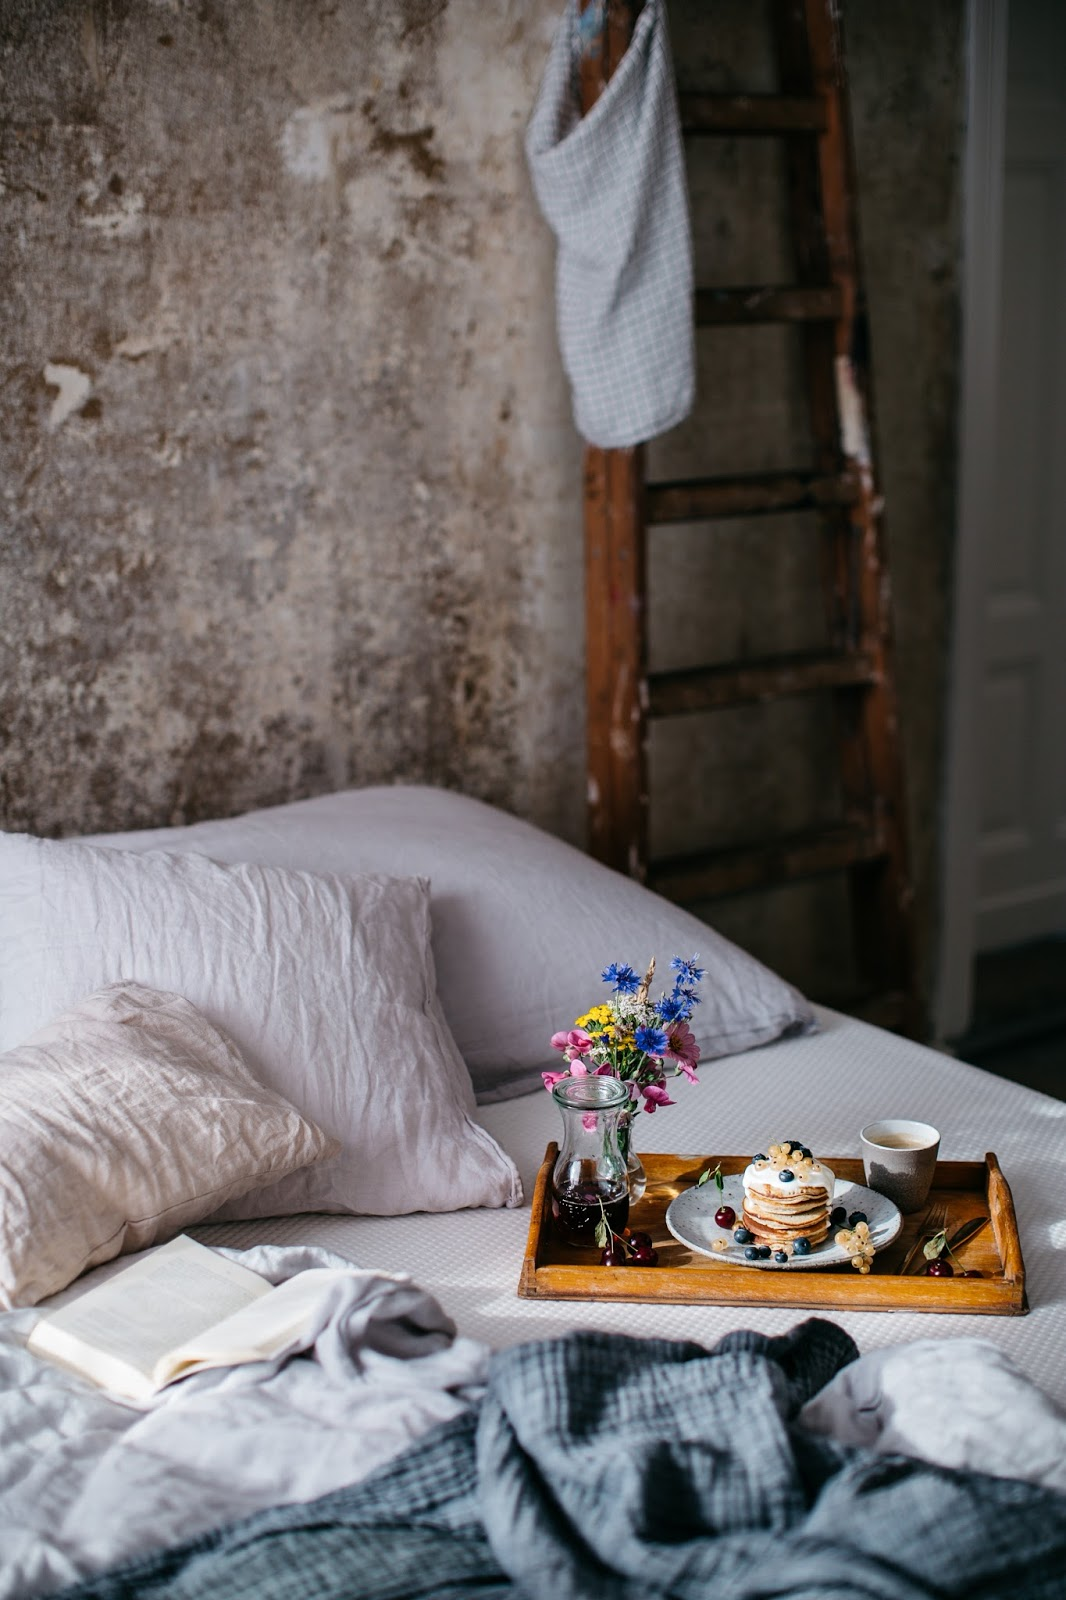 breakfast in bed with our new comfortable muun mattress delicious and fluffy glutenfree pancakes - Fantastisch Tumblr Inspiration Zimmer